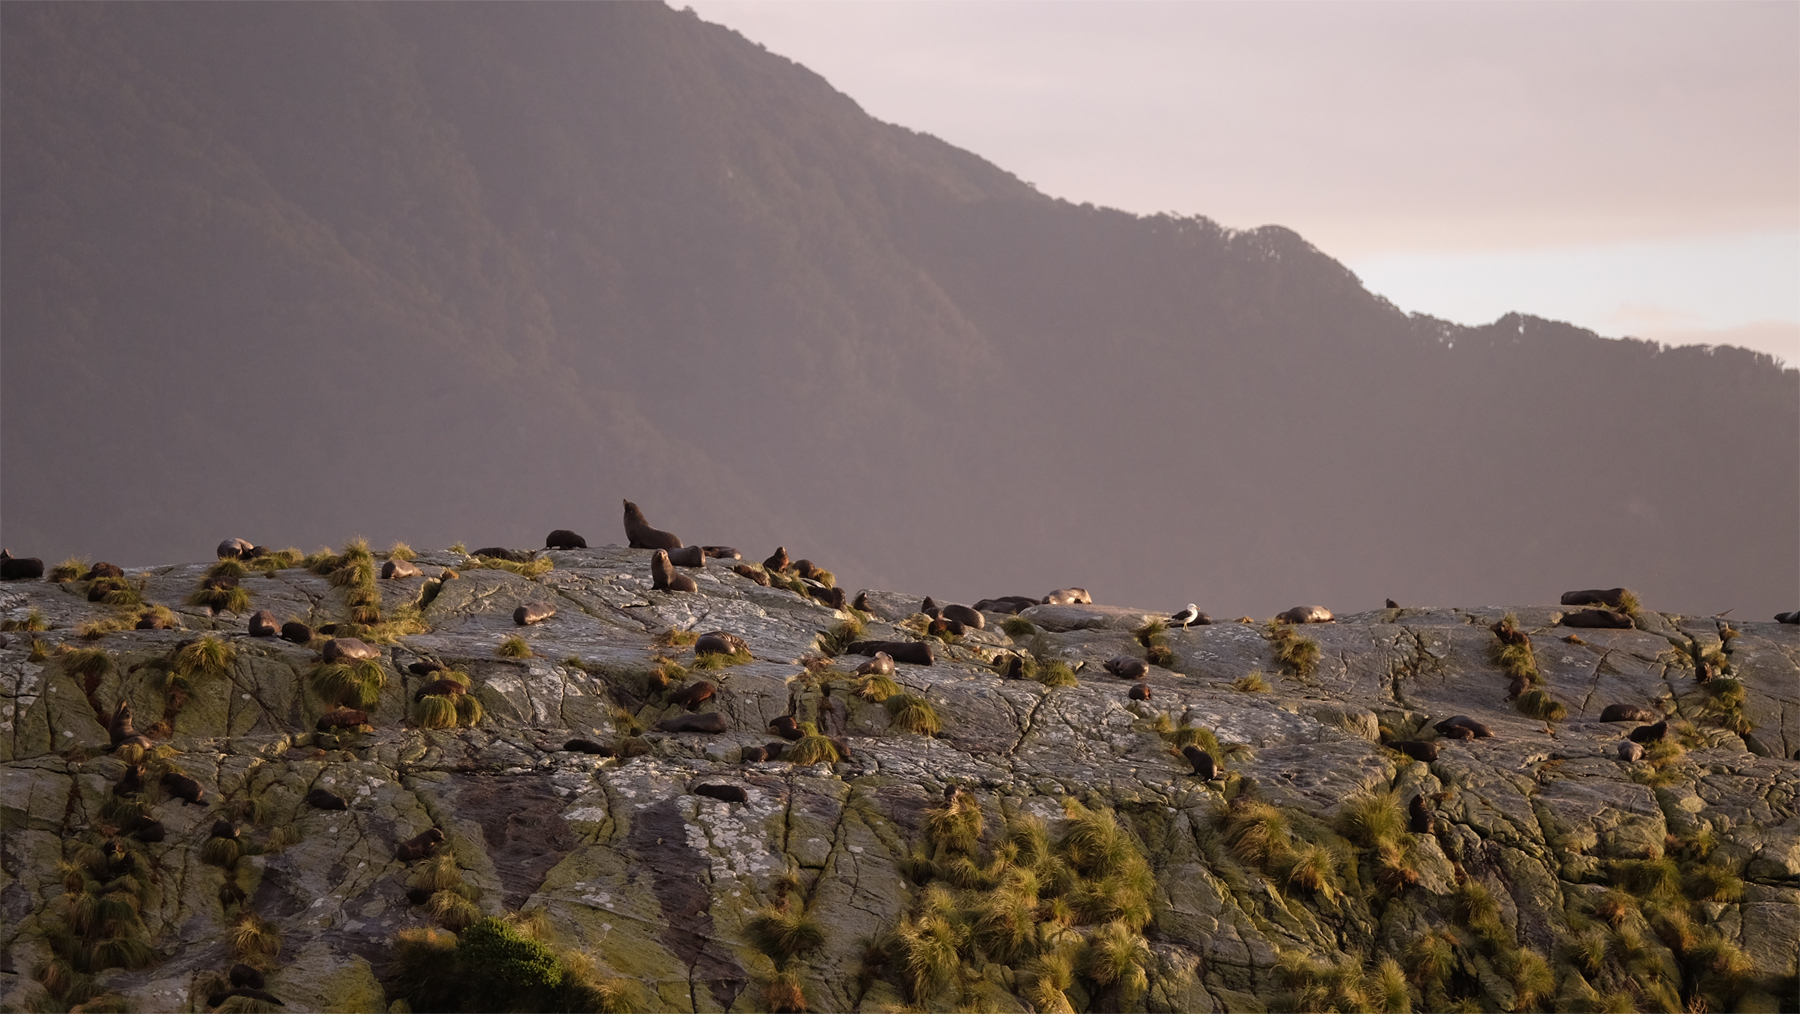 Fur seals basking in the setting sun at the entrance to the Tasman Sea.